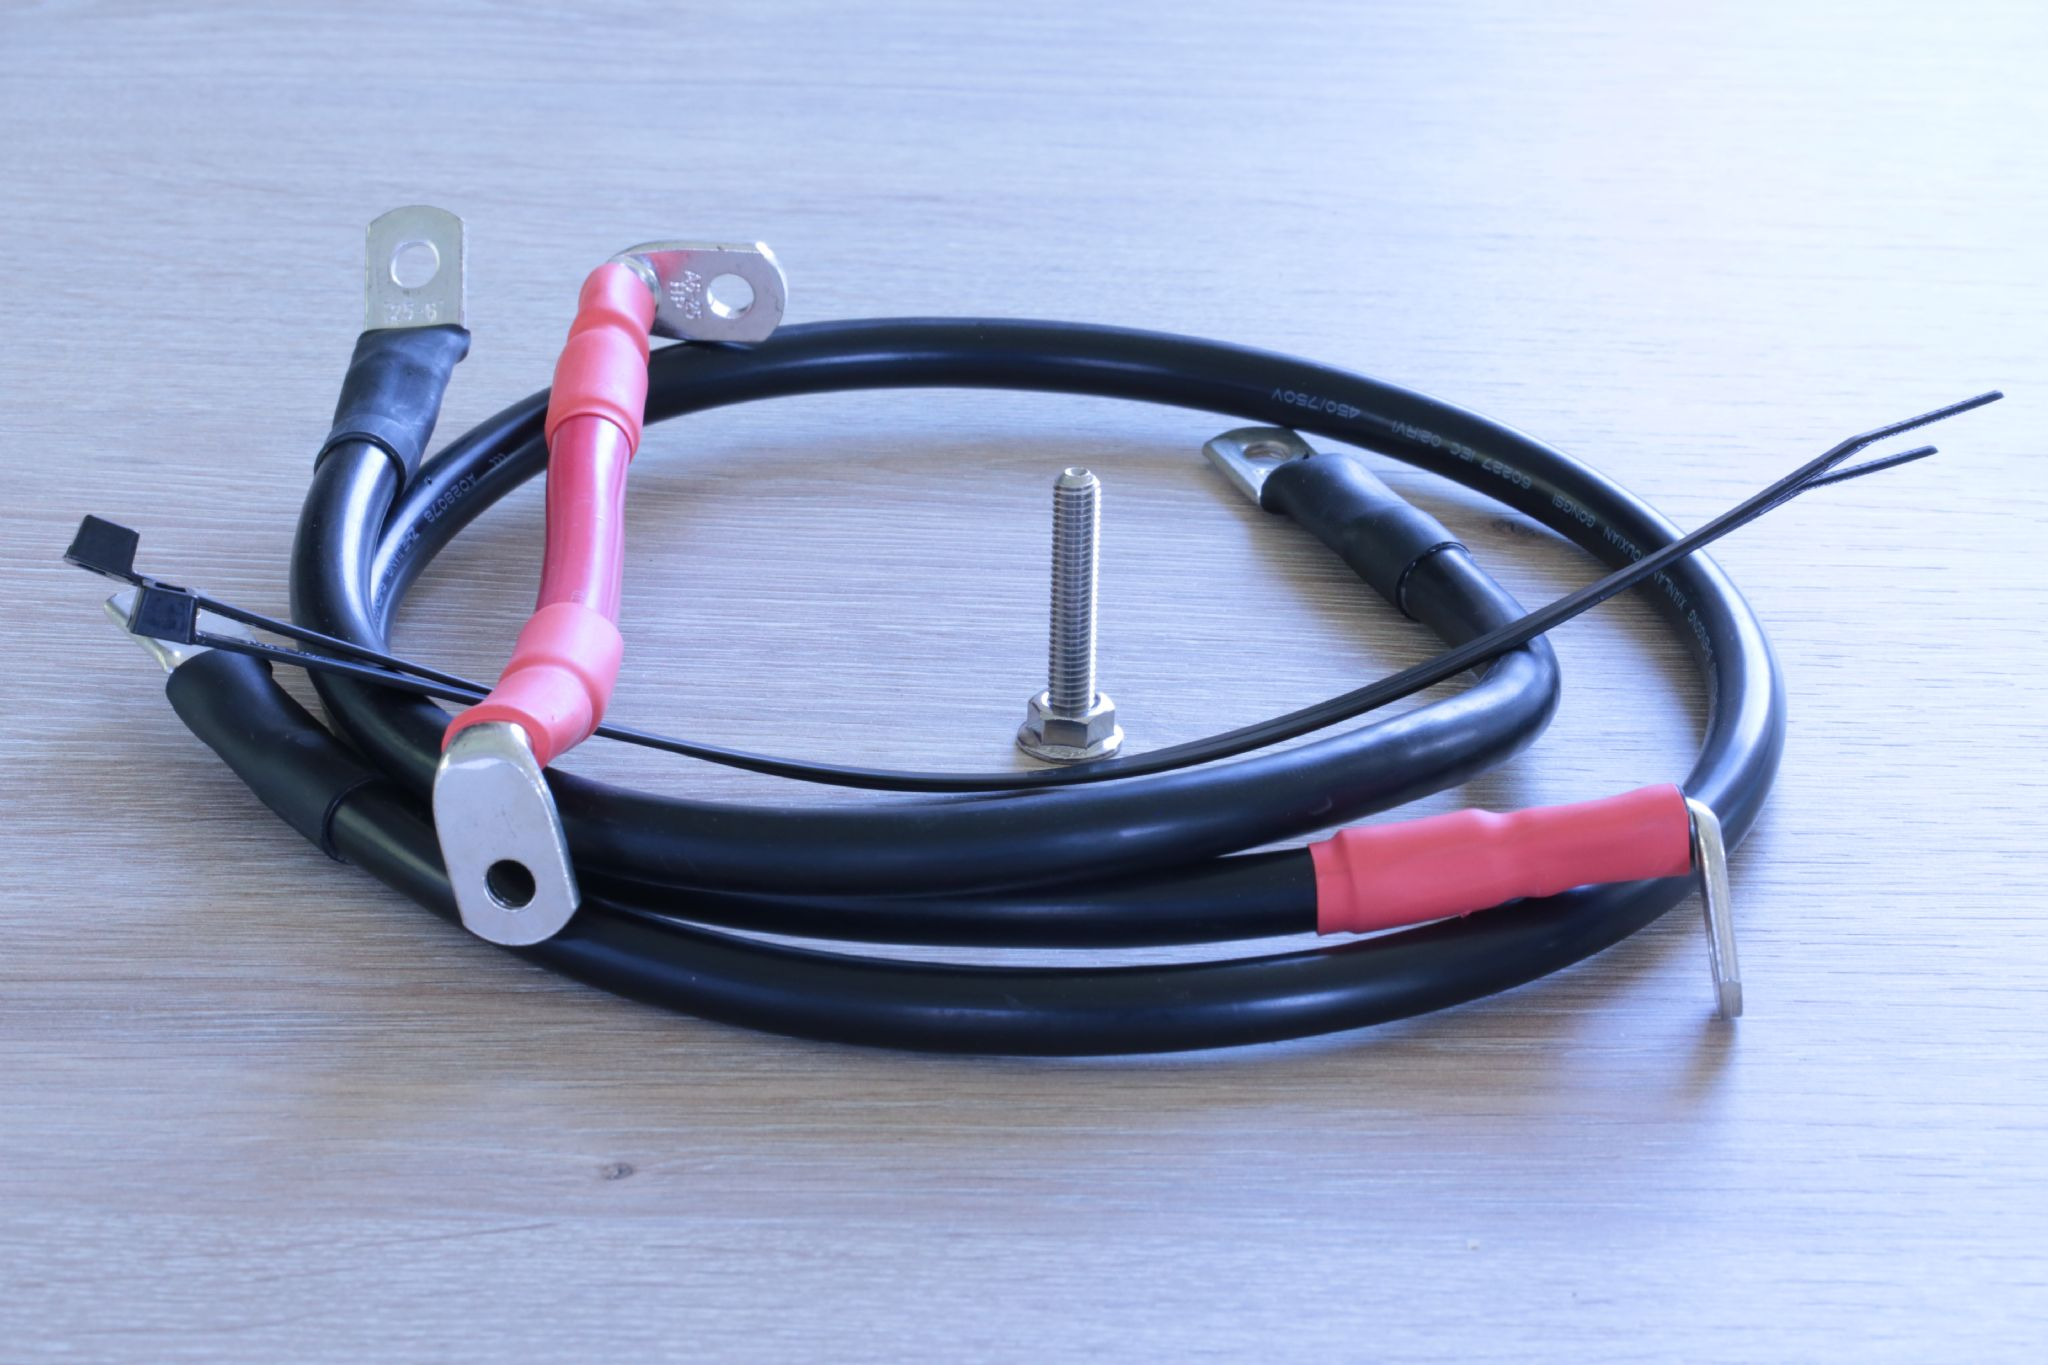 Triumph Tiger 1050 Se Starter Battery Cables Upgrade